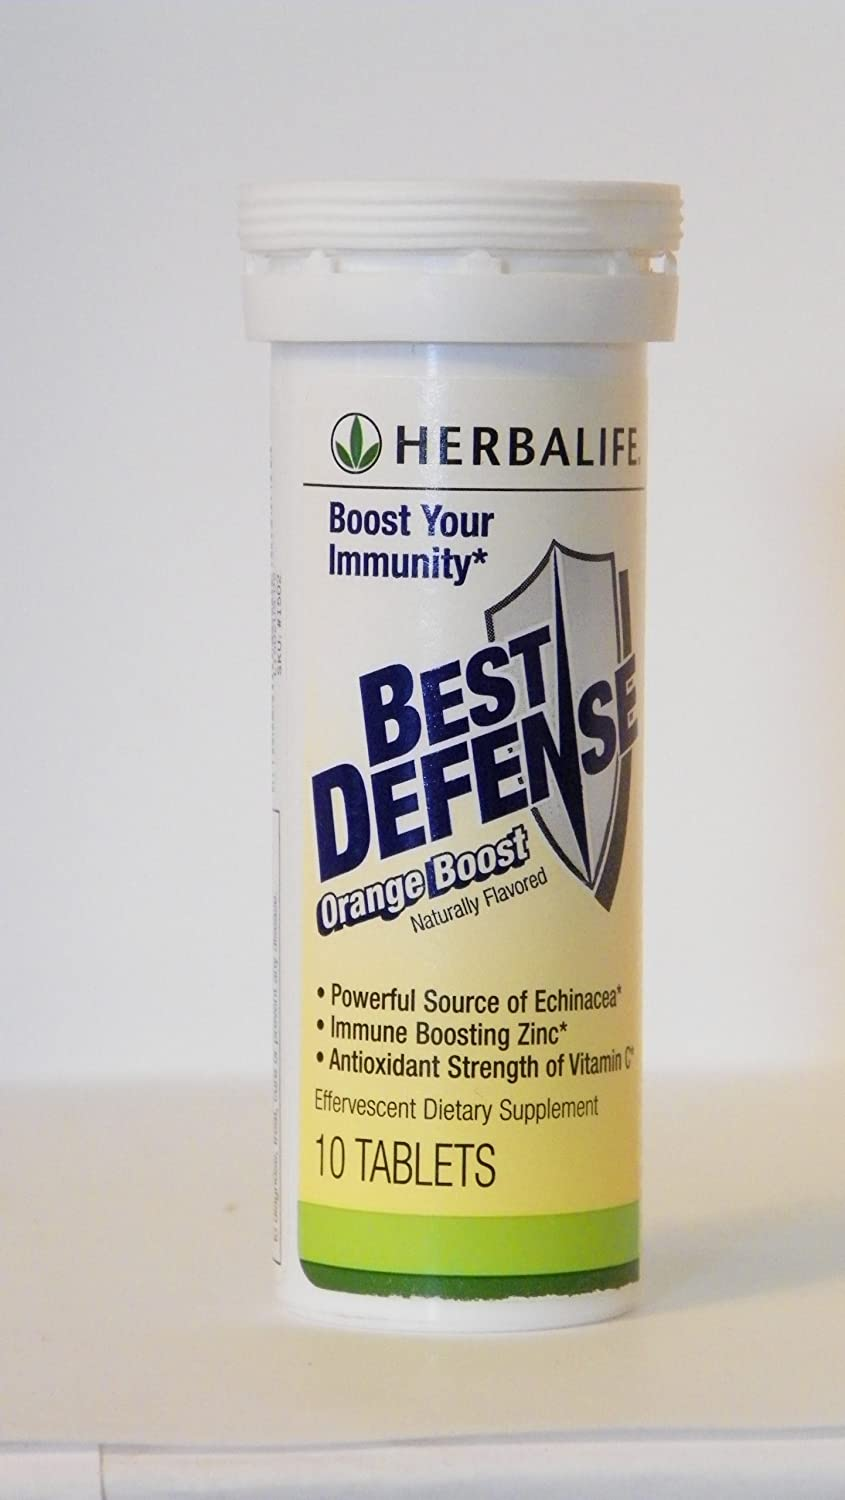 Herbalife Best Defense – Orange Boost 10 Tablets